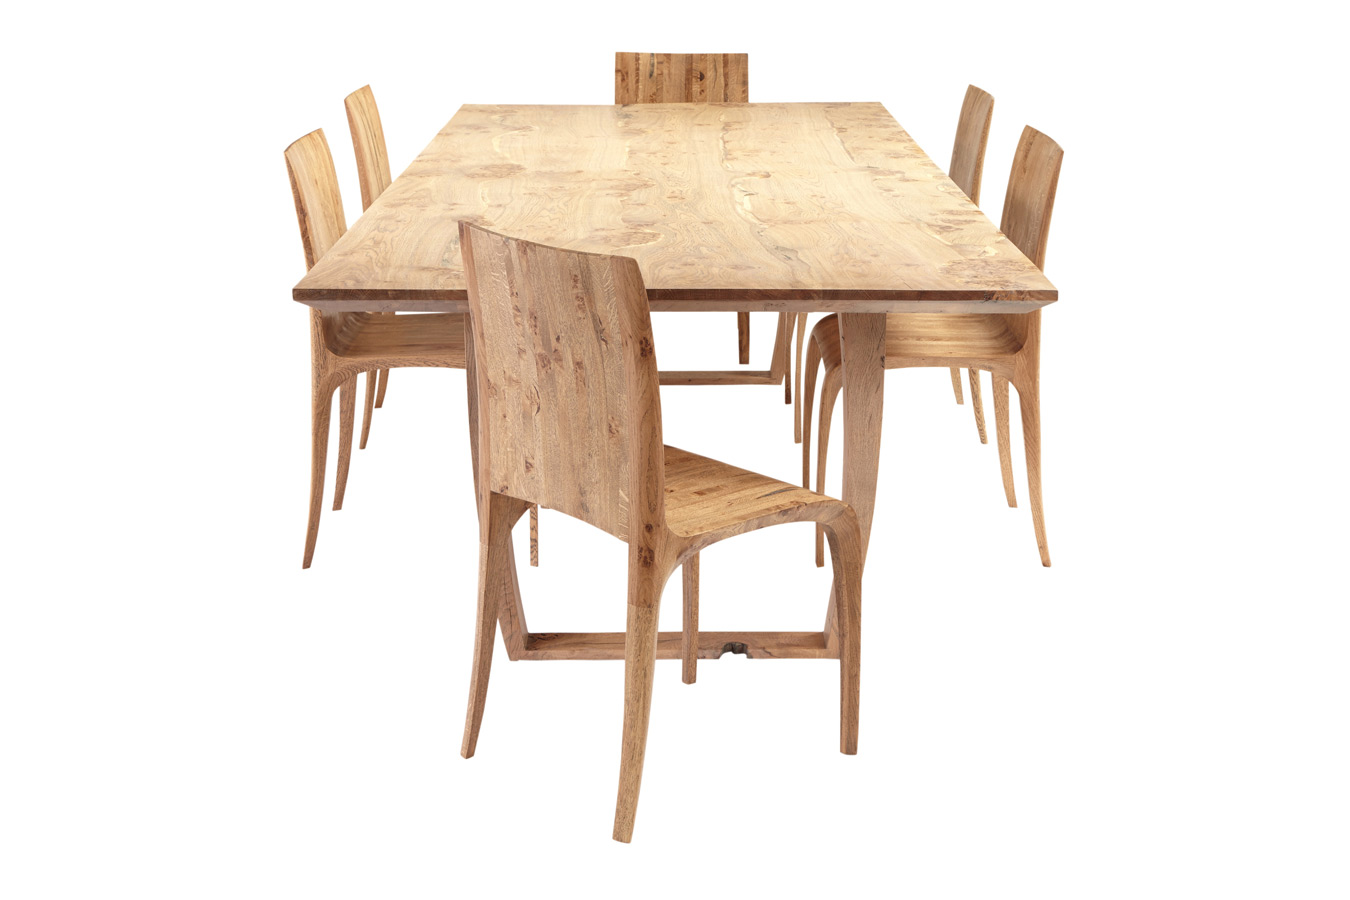 29_Burr-oak-table-and-chairs_1.jpg